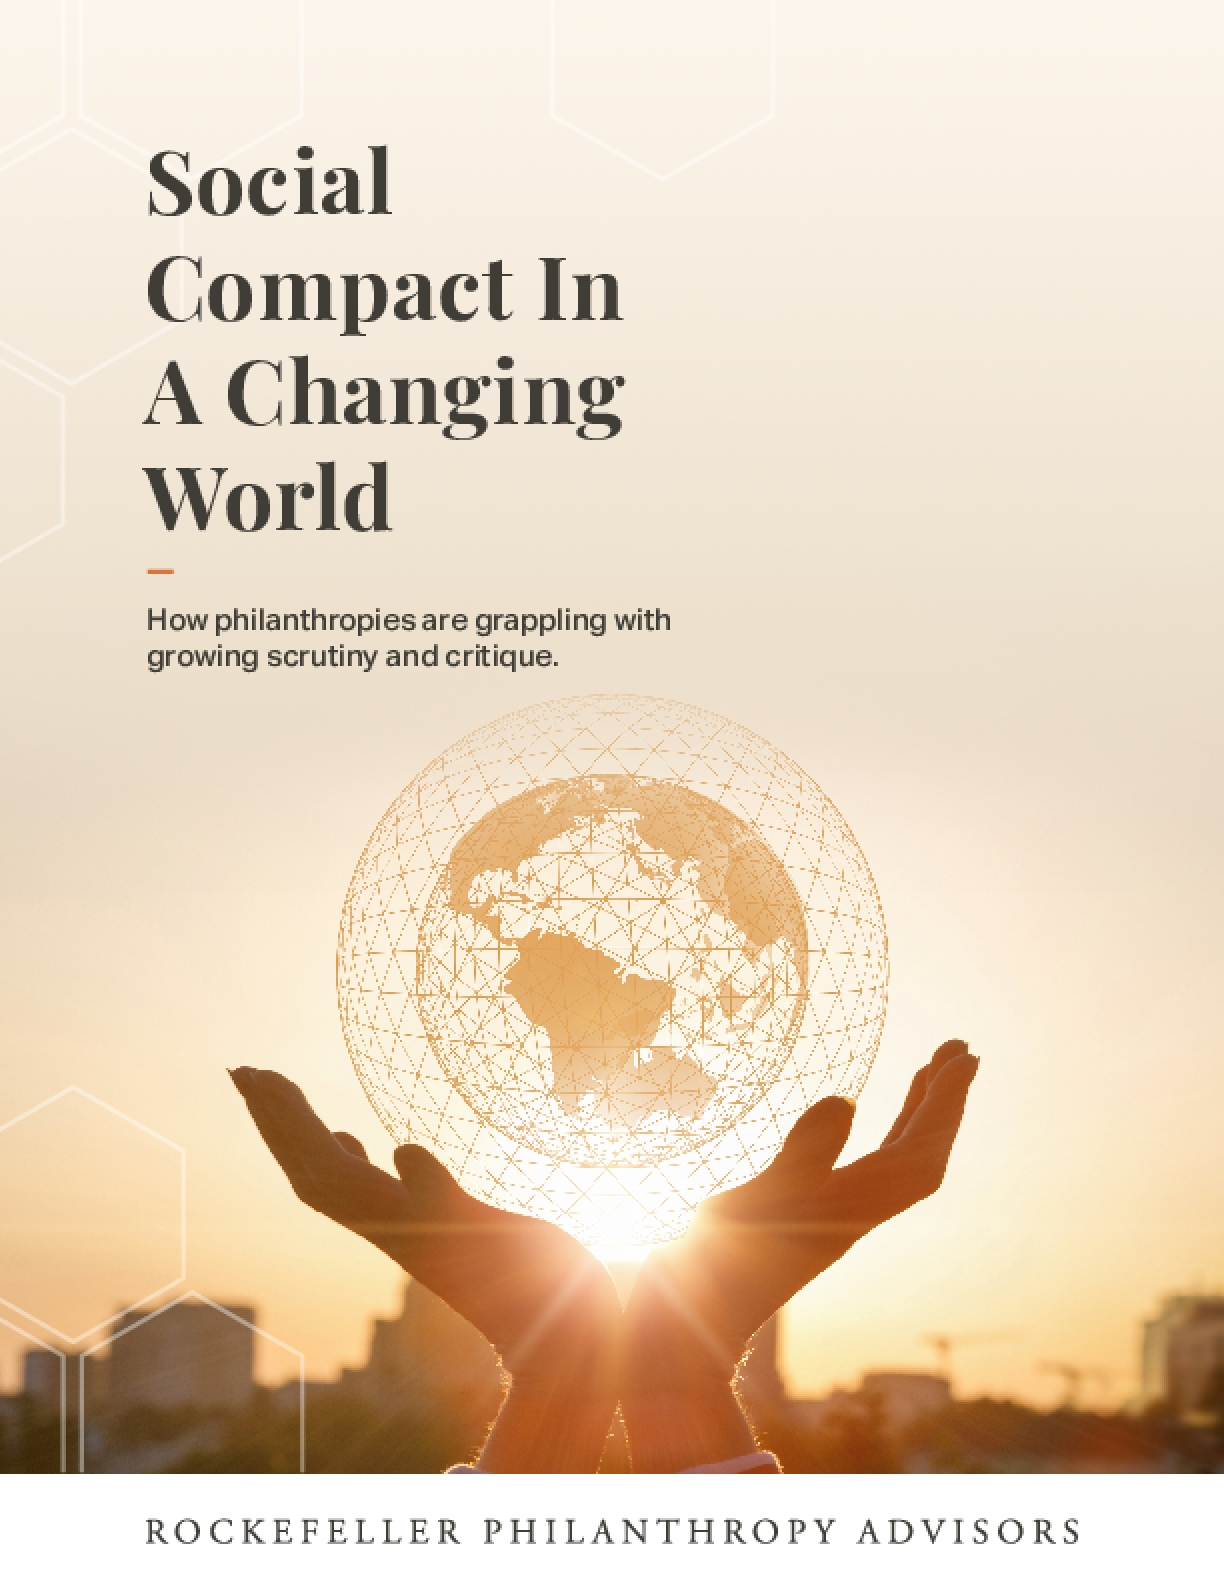 Social Compact In A Changing World: How Philanthropies are Grappling with Growing Scrutiny and Critique